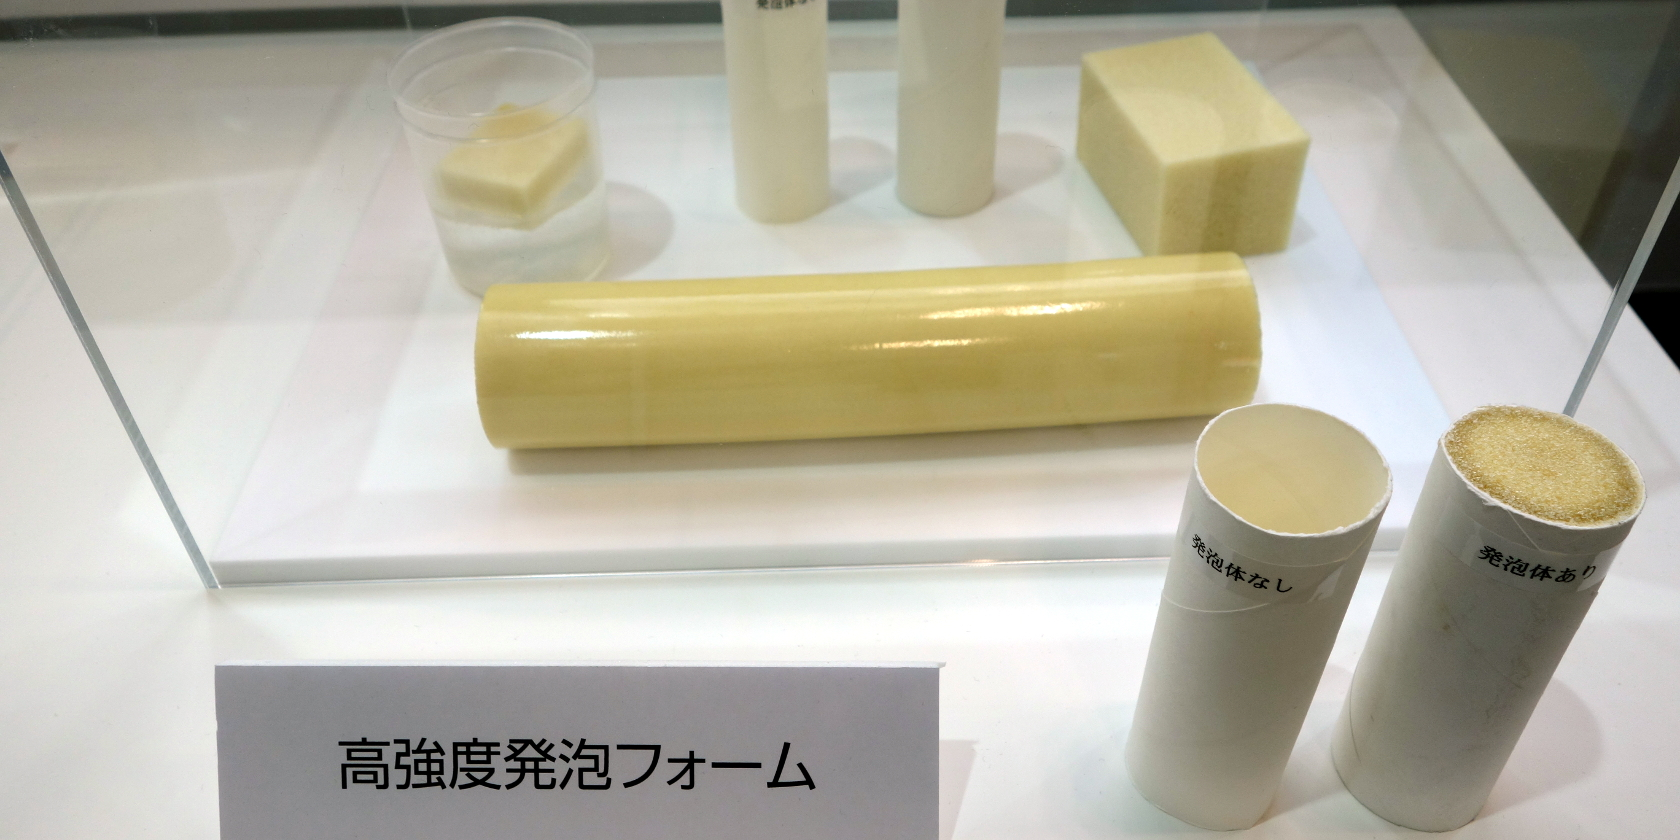 Yokohama Rubber Significantly Boosts Strength of Urethane Adhesives, Expanding Foam